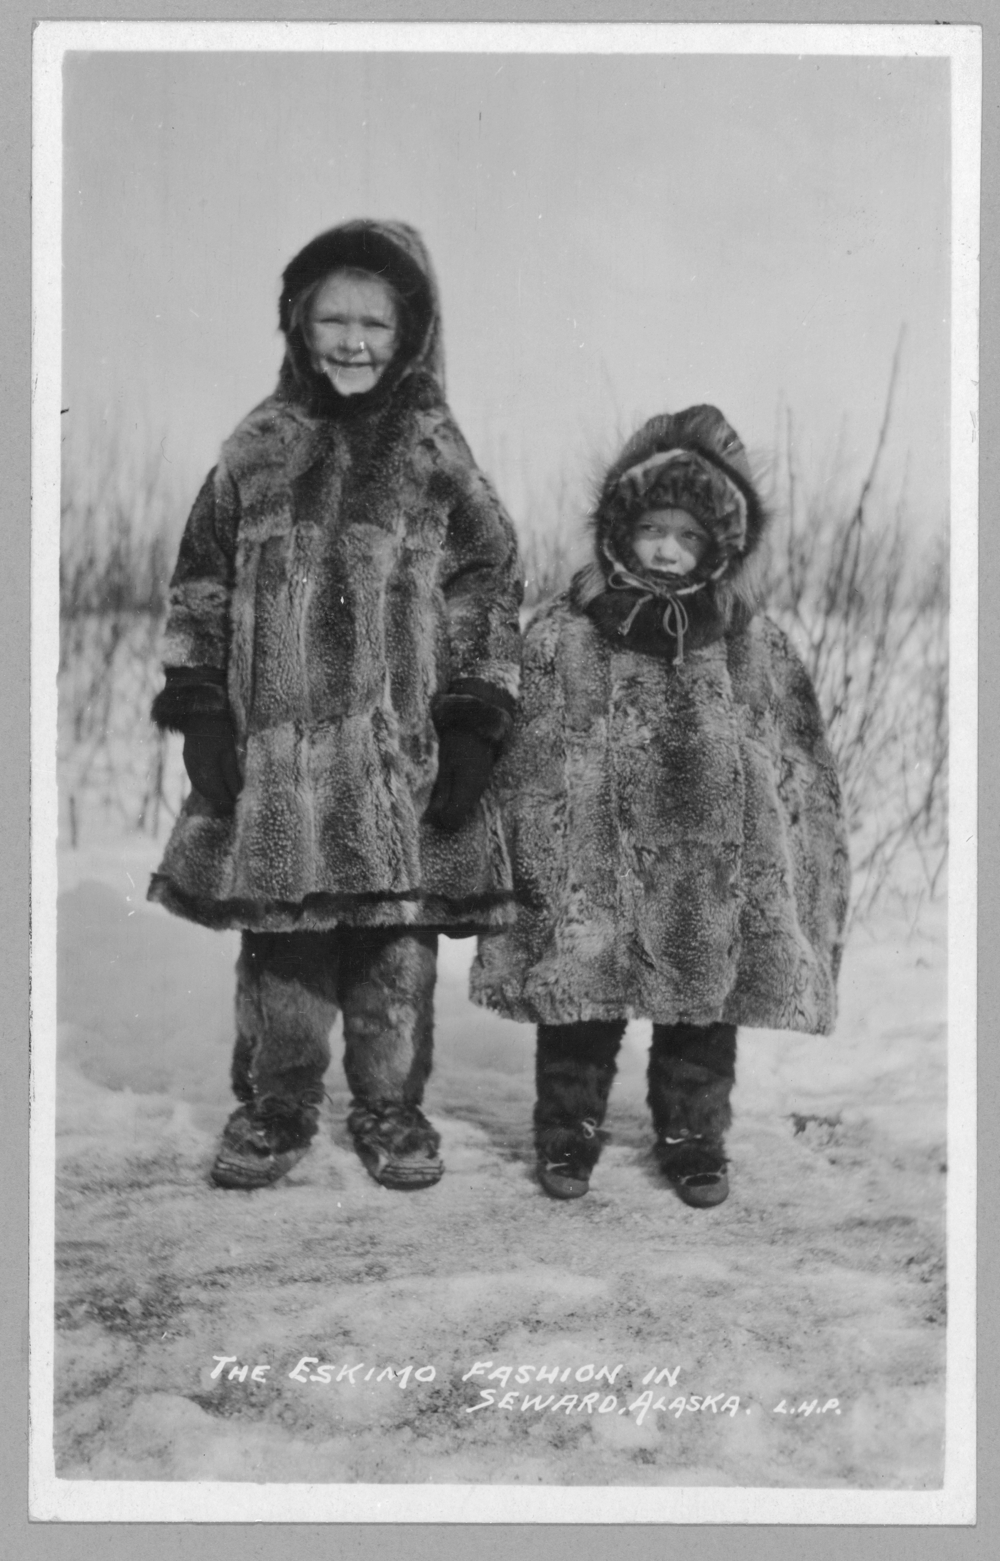 Children in Eskimo fur clothing